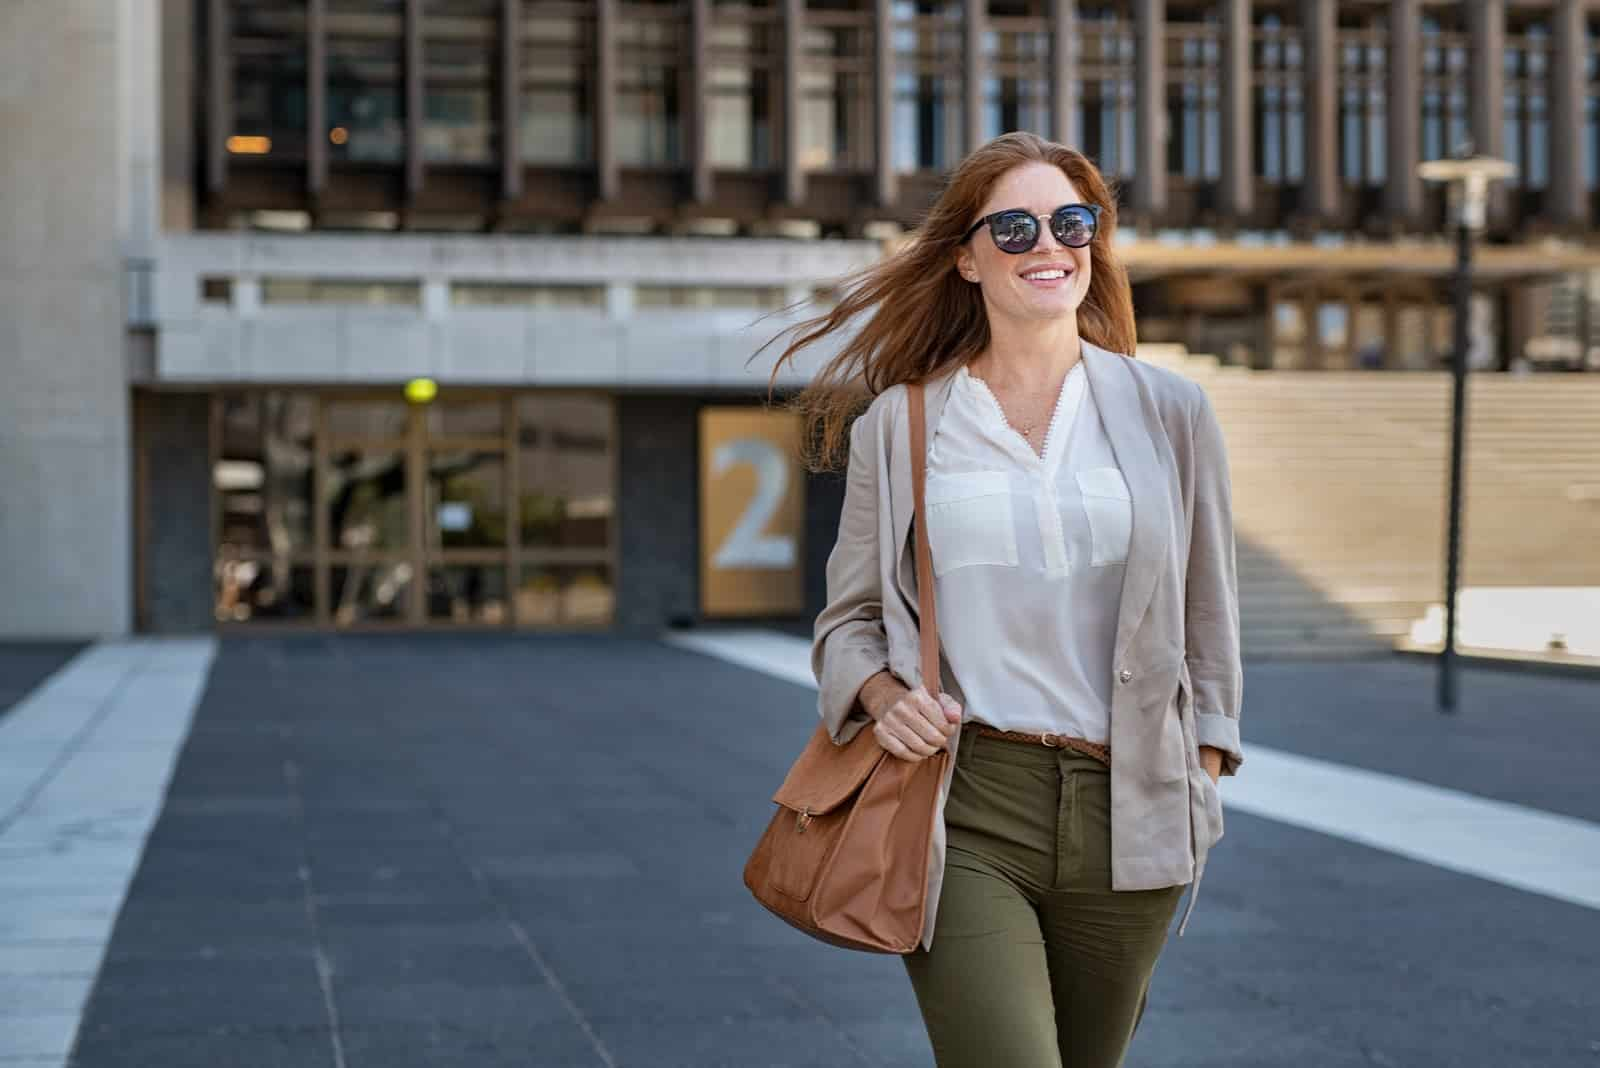 a smiling woman walks down the street